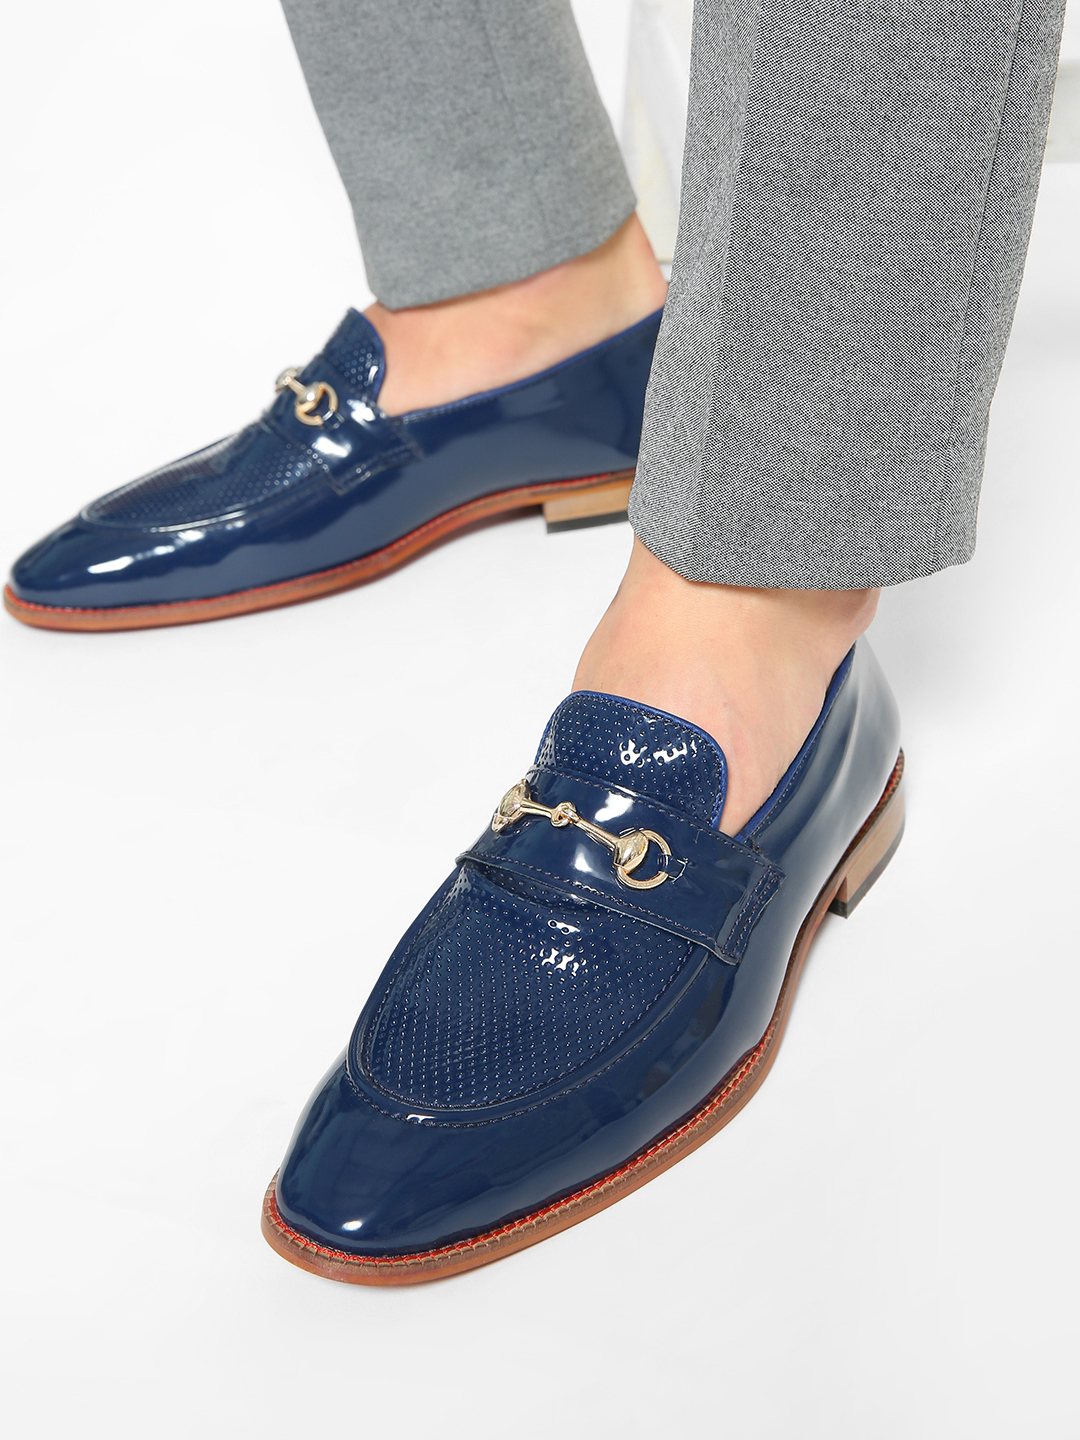 Bolt Of The Good Stuff Blue Patent Perforated Panel Horsebit Loafers 1